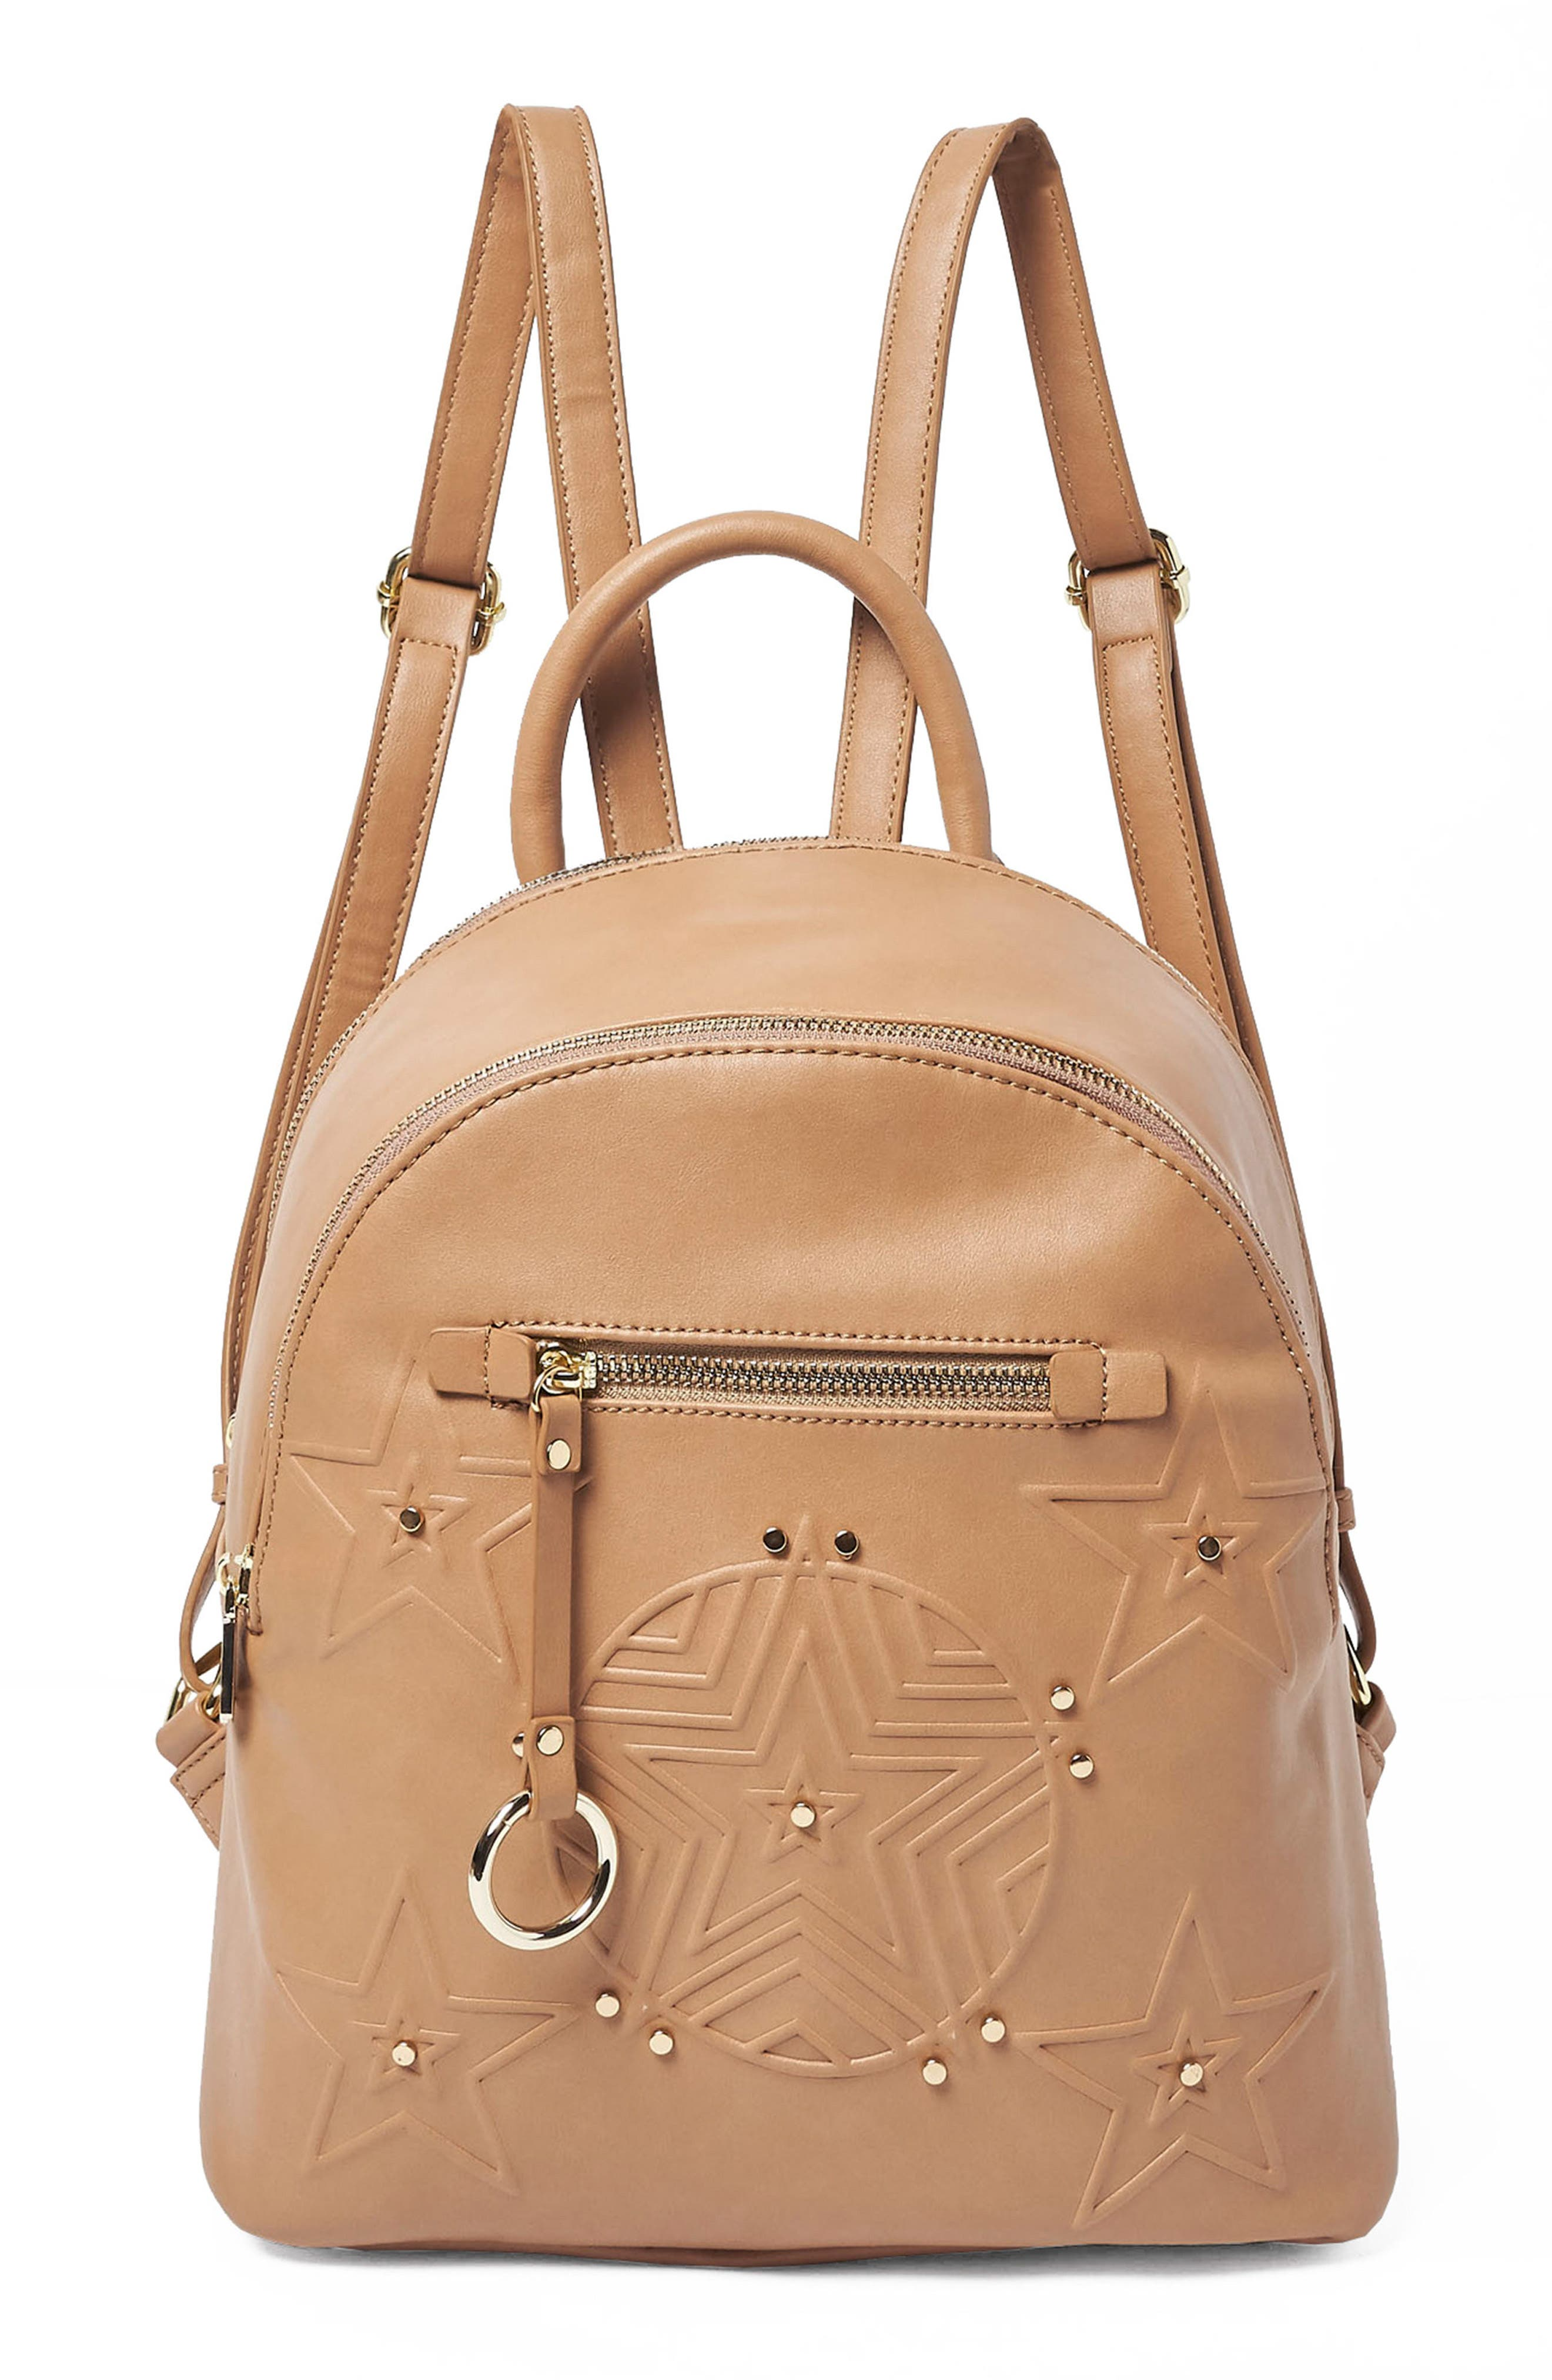 Urban Originals CELESTIAL VEGAN LEATHER BACKPACK - BEIGE